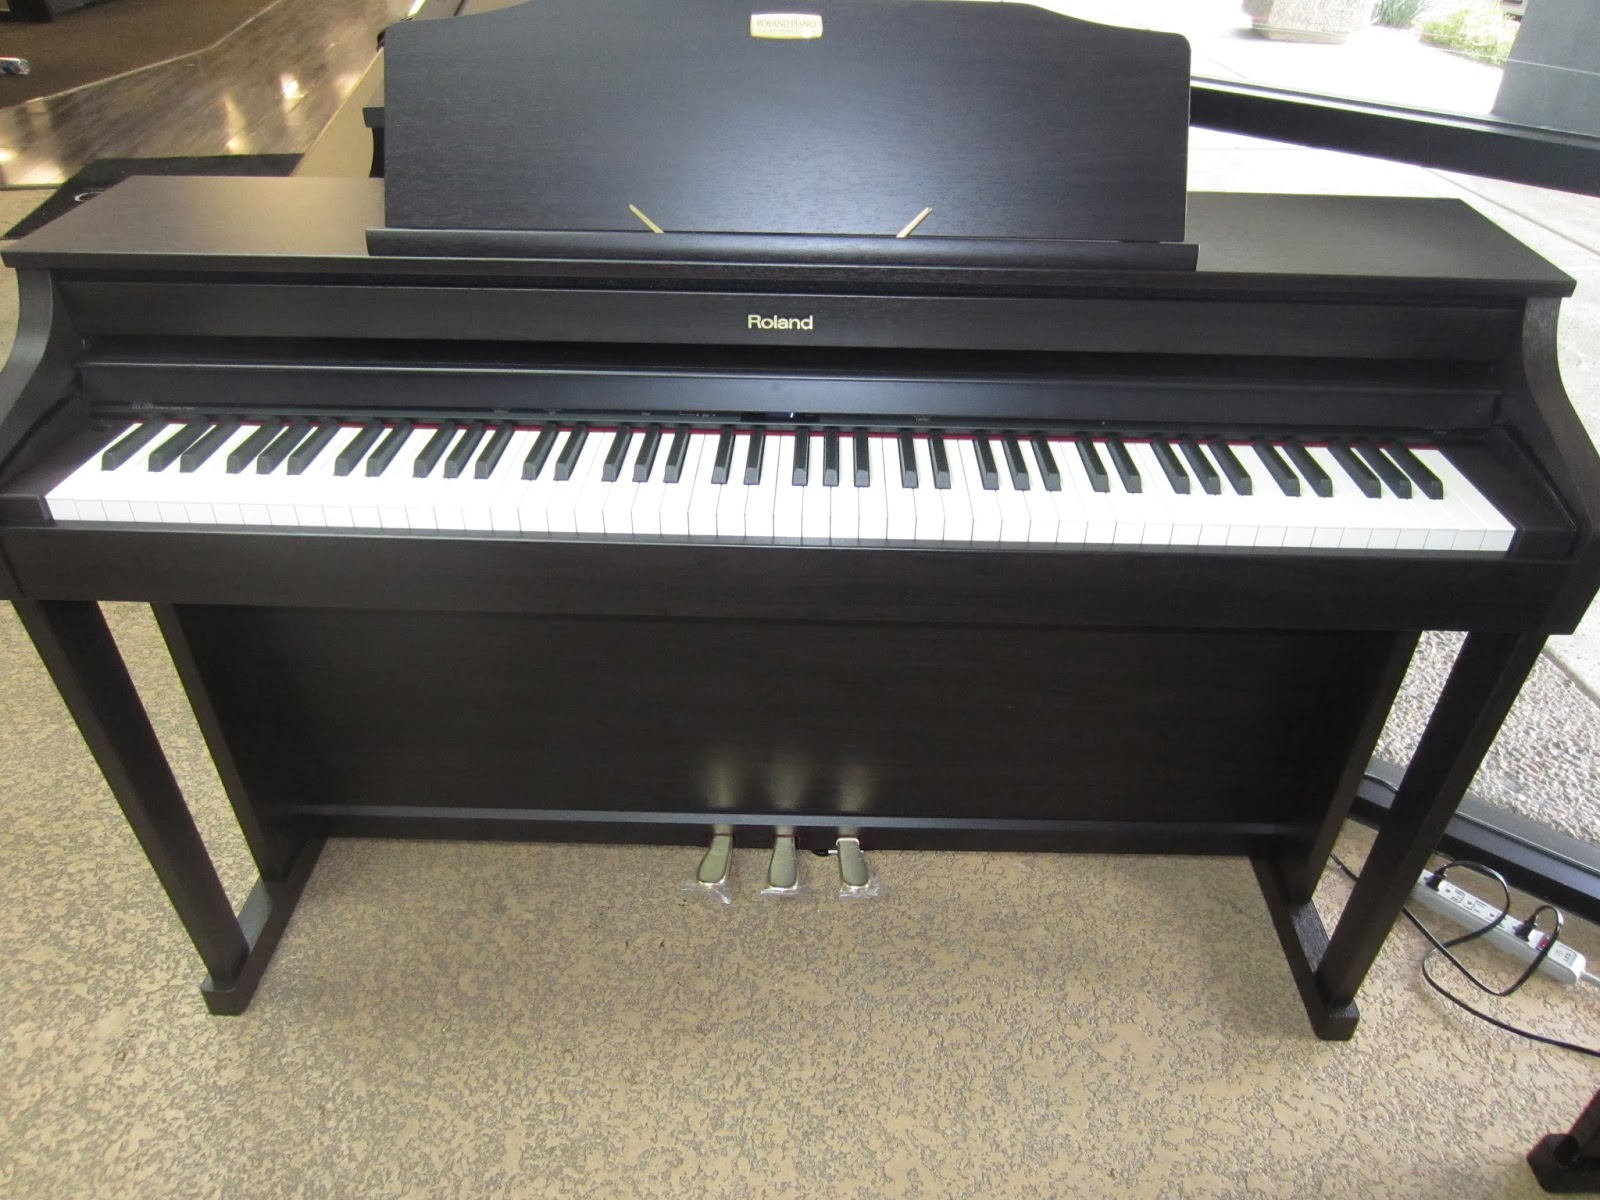 az piano reviews review roland hp504 hp506 hp508 digital pianos recommended. Black Bedroom Furniture Sets. Home Design Ideas